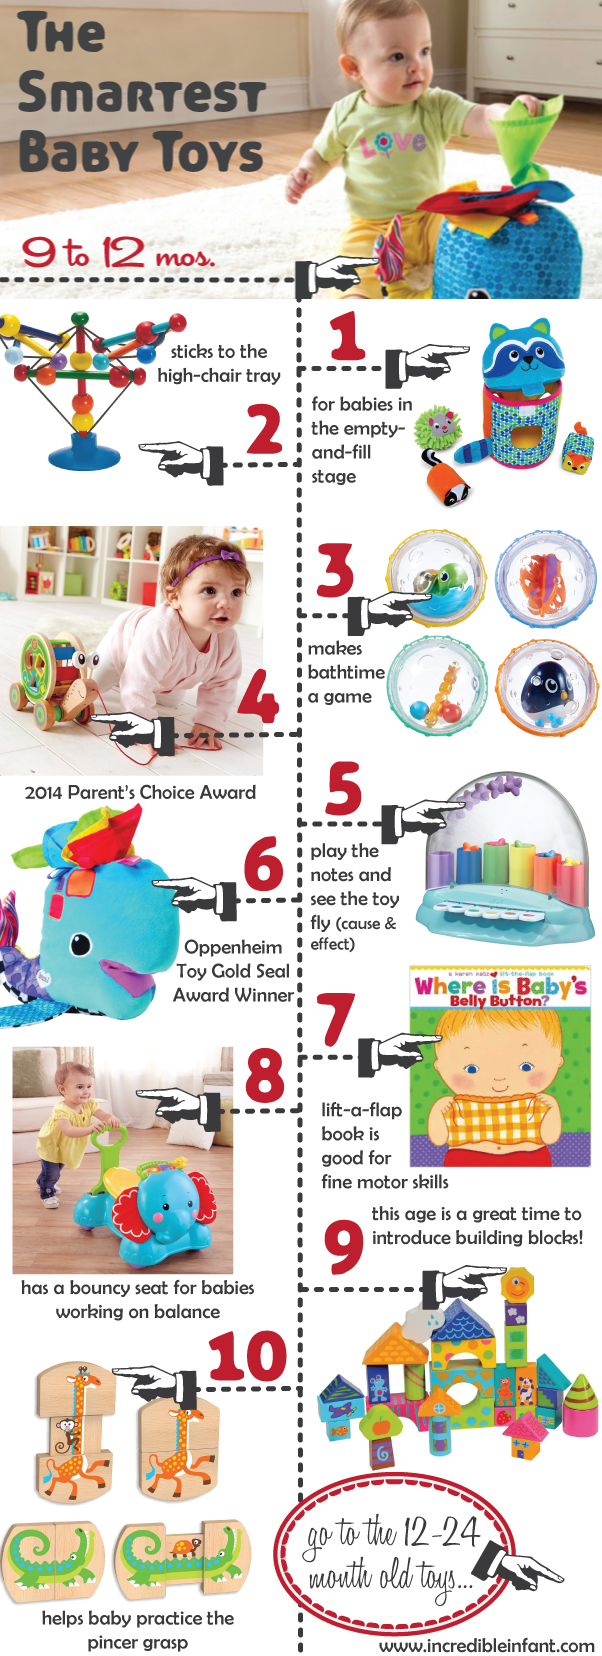 The Smartest Baby Toys for Ages 9-12 Months